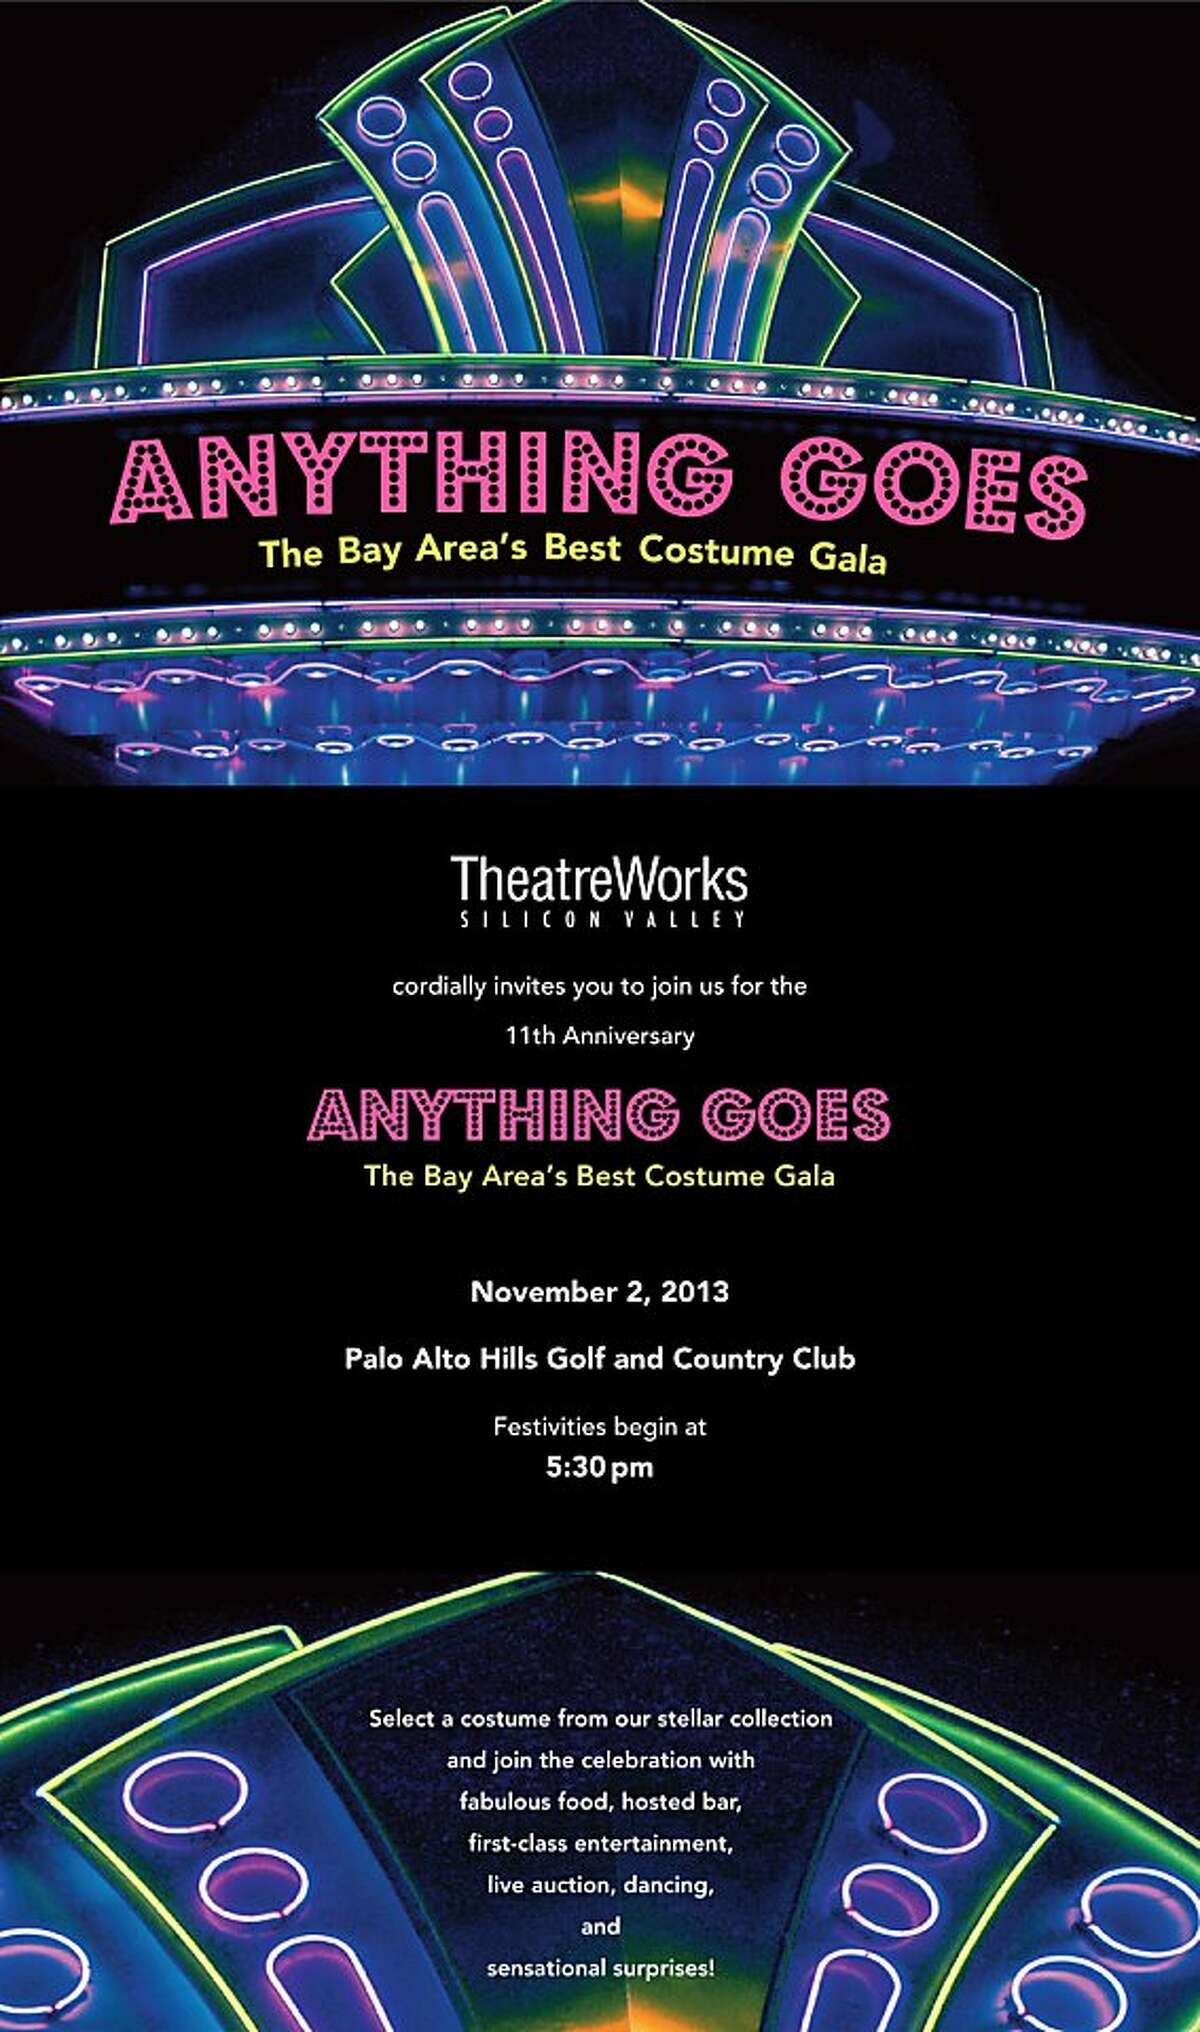 TheatreWorks of Palo Alto's annual gala will be held on Nov. 2, 2013, at the Palo Alto Golf and Hills Country Club. It will be hosted by Golden Globe Award-winner and three-time Emmy-nominee Bill Grundfest. Tickets are $300 to $500 each at events@theatreworks.org.